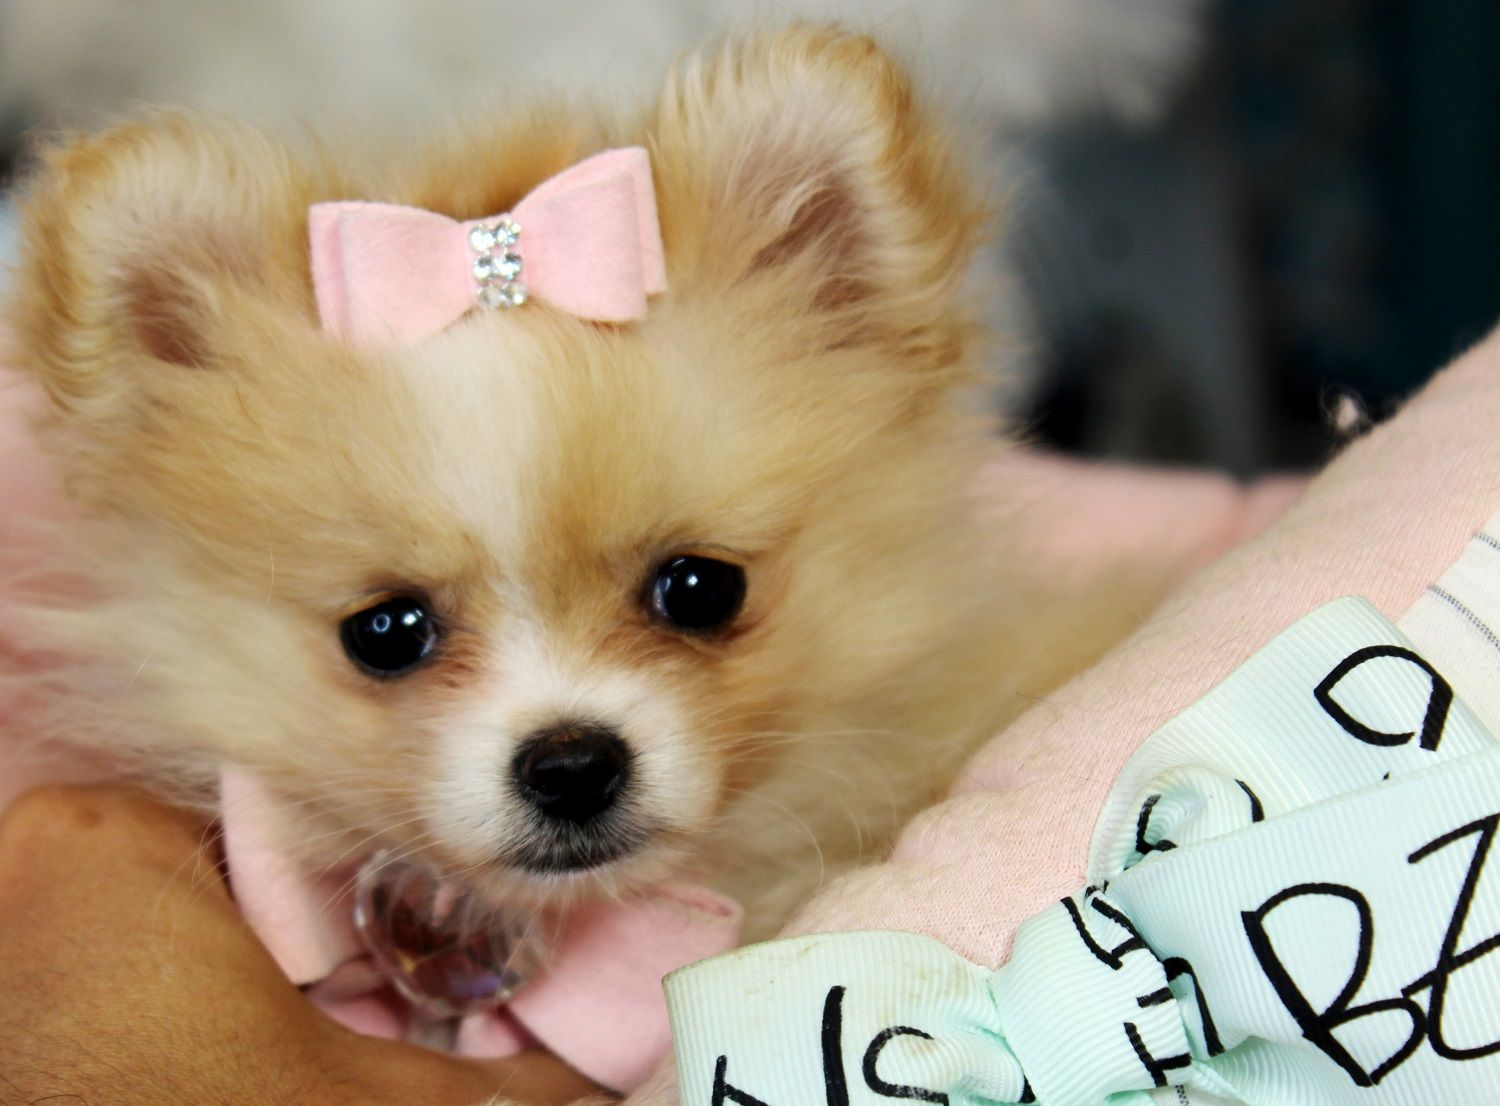 Teacup Teddy Bear Poms! ♥♥♥ Bring This Perfect Baby Home